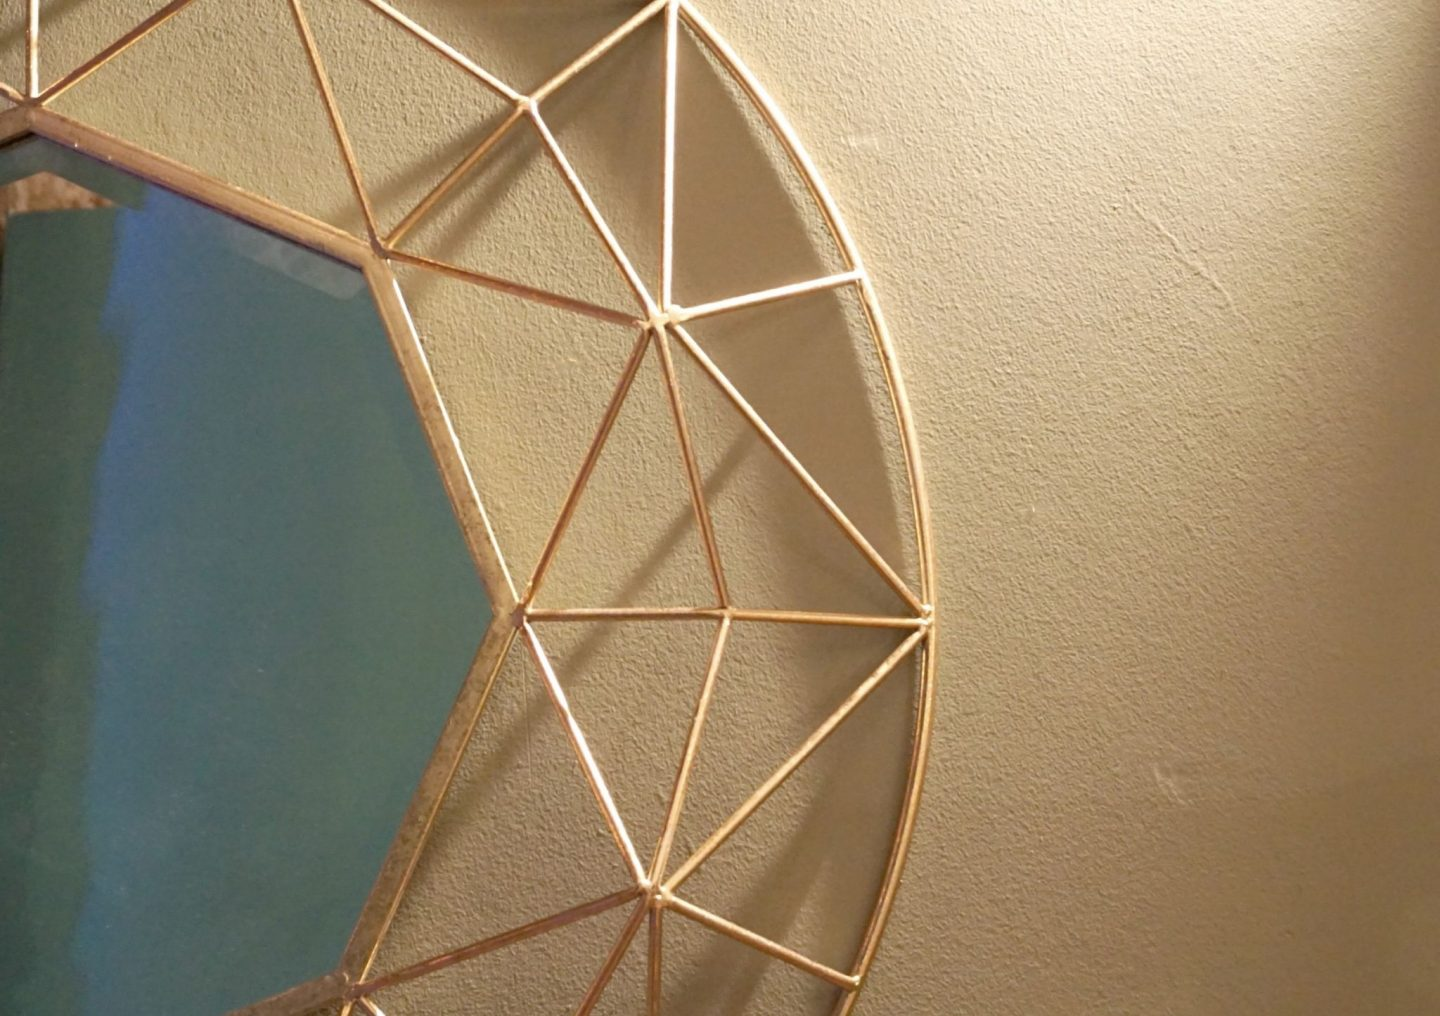 Next mirrors AW17 Collection, The Interiors www.extraordinarychaos.com